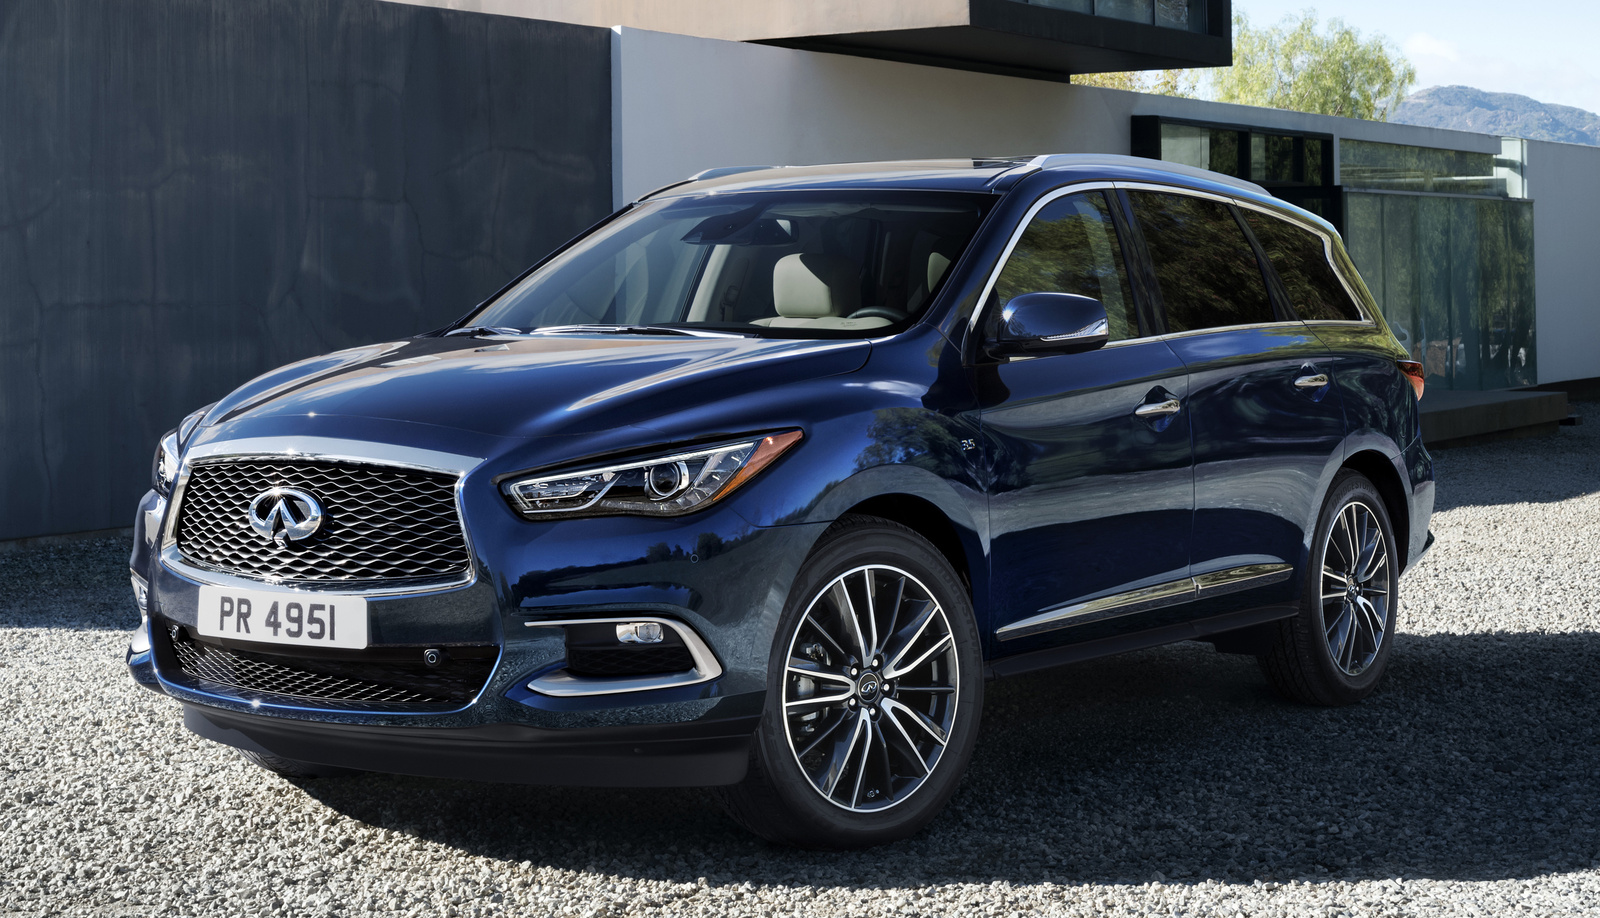 Qx60 For Sale >> 2016 / 2017 INFINITI QX60 for Sale in Columbia, SC - CarGurus